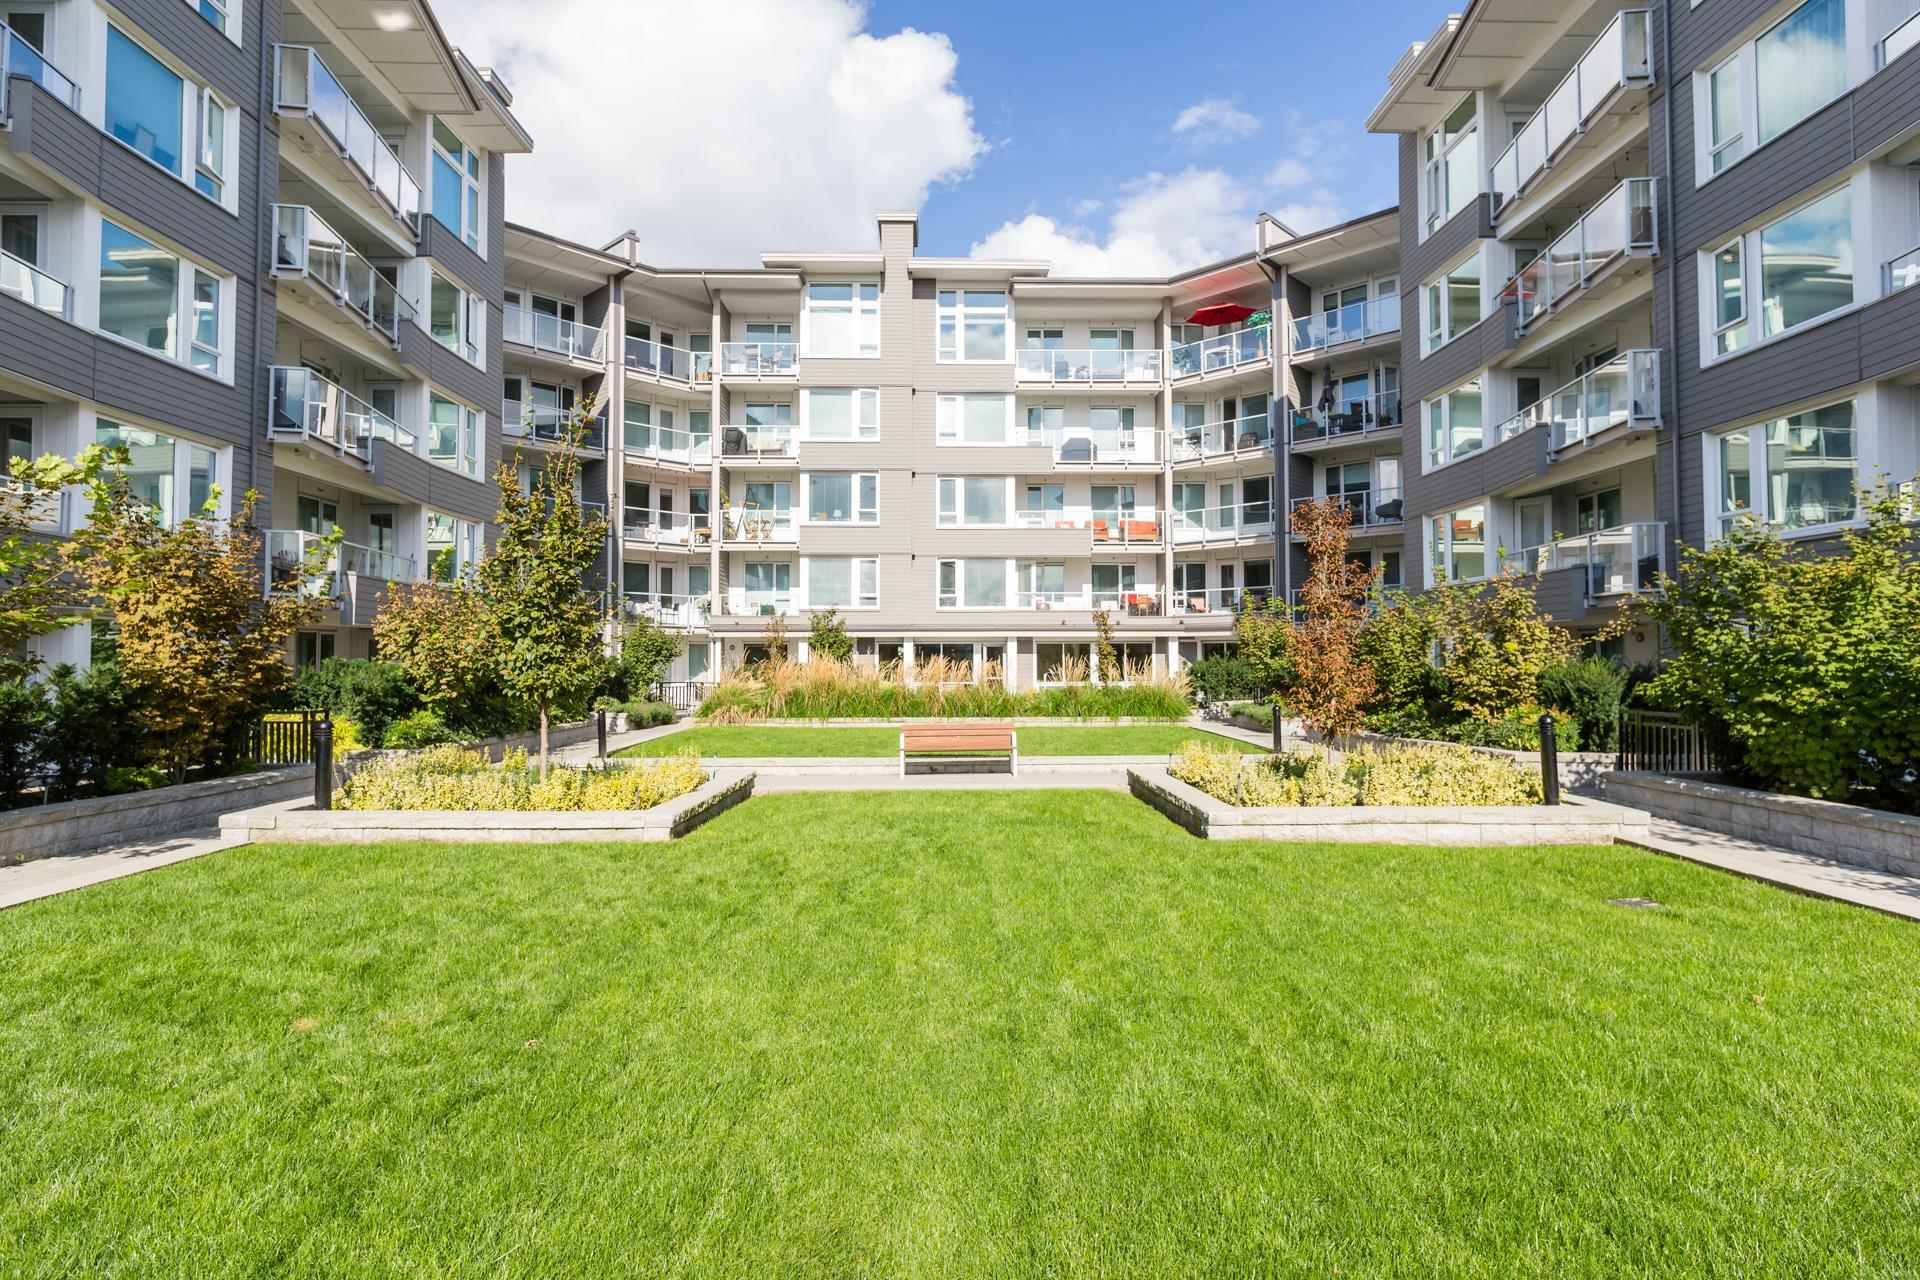 207 255 W 1ST STREET - Lower Lonsdale Apartment/Condo for sale, 2 Bedrooms (R2603882) - #27